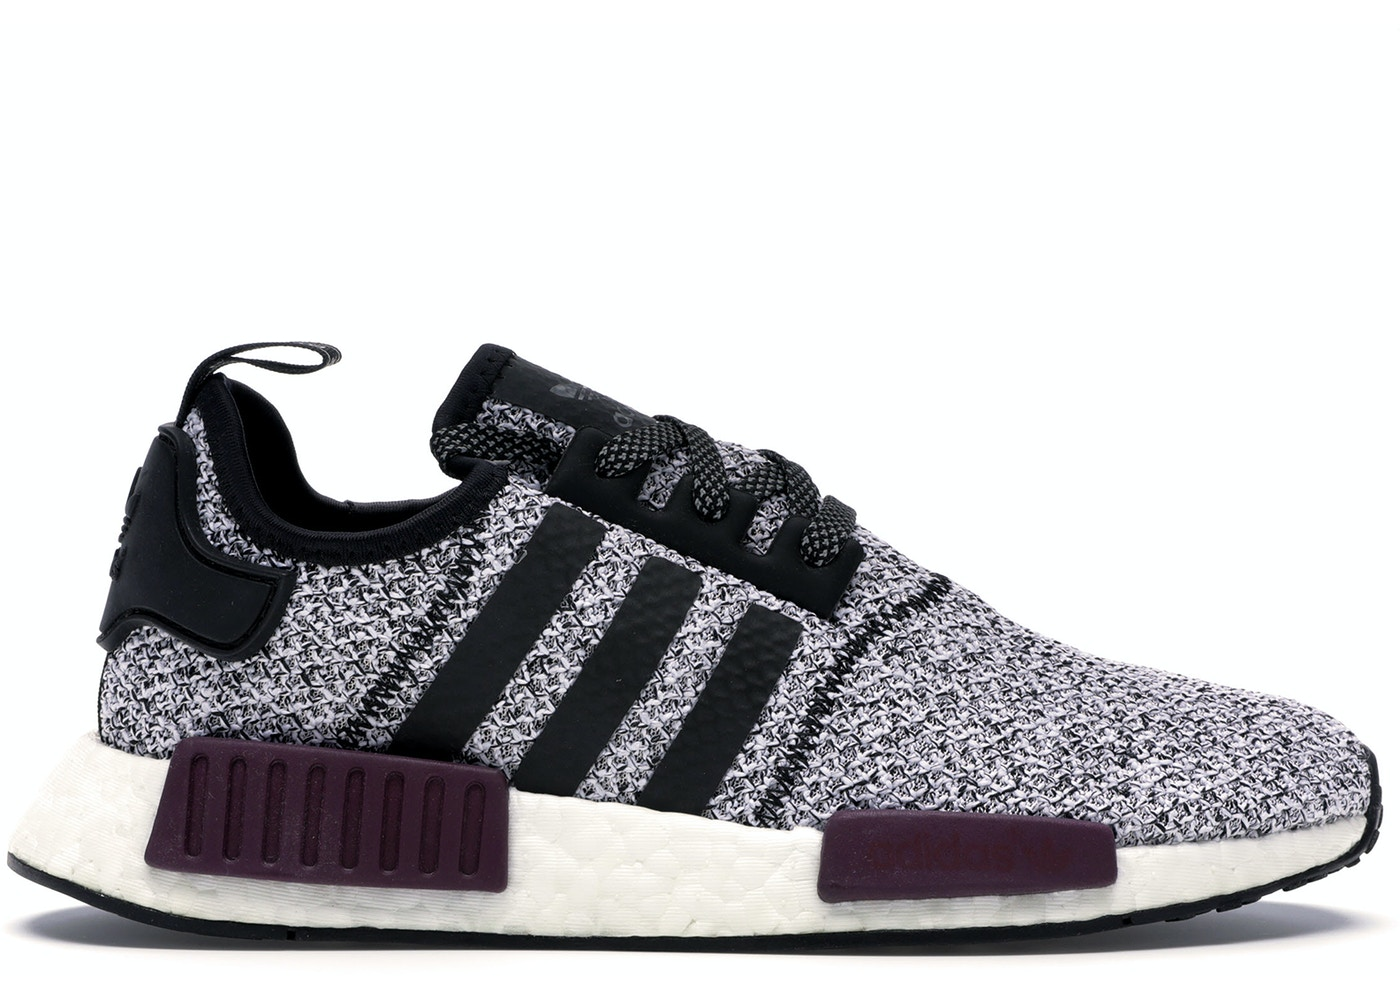 size 40 d40c0 90914 adidas NMD Size 7 Shoes - Volatility